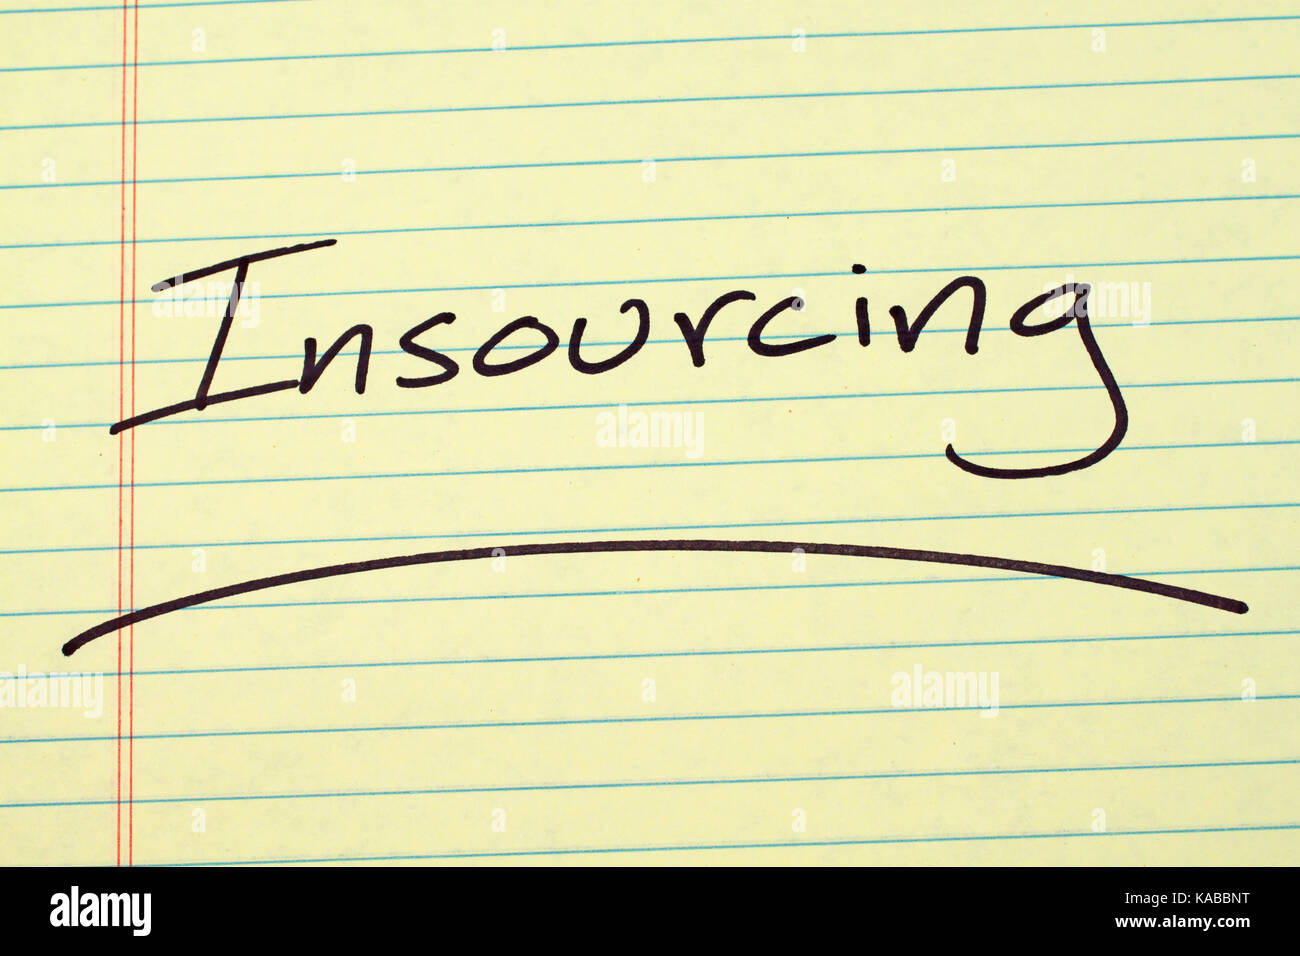 """The word """"Insourcing"""" underlined on a yellow legal pad Stock Photo"""